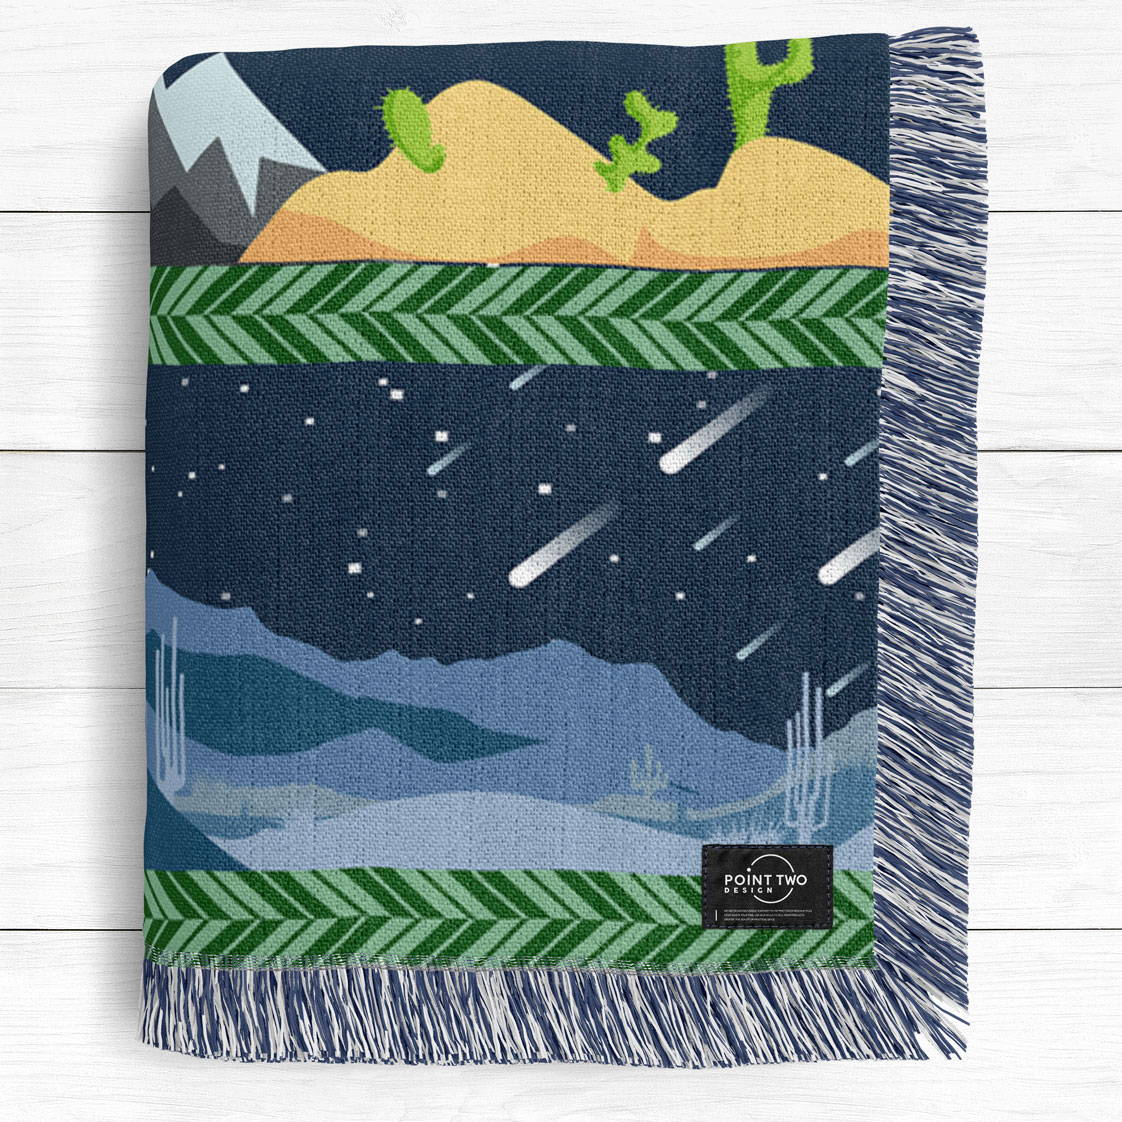 modern illustrated artwork of california state from north to south as a cotton woven blanket